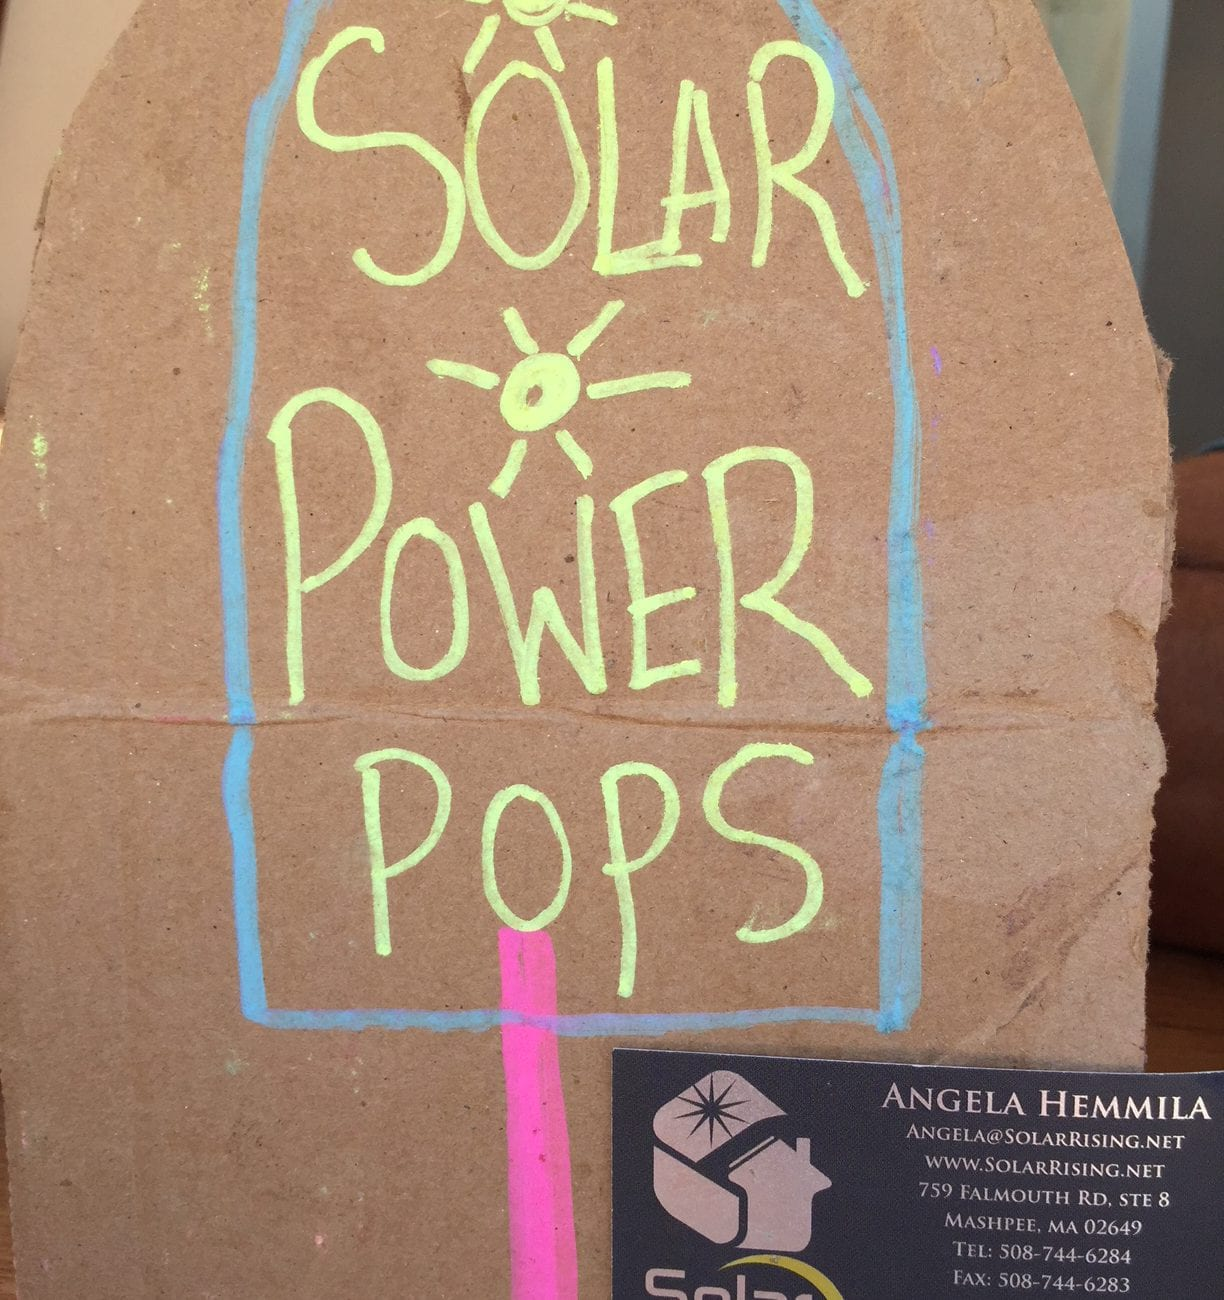 Yommi Superfood Popsicles Martha's Vineyard Food Truck Solar Power